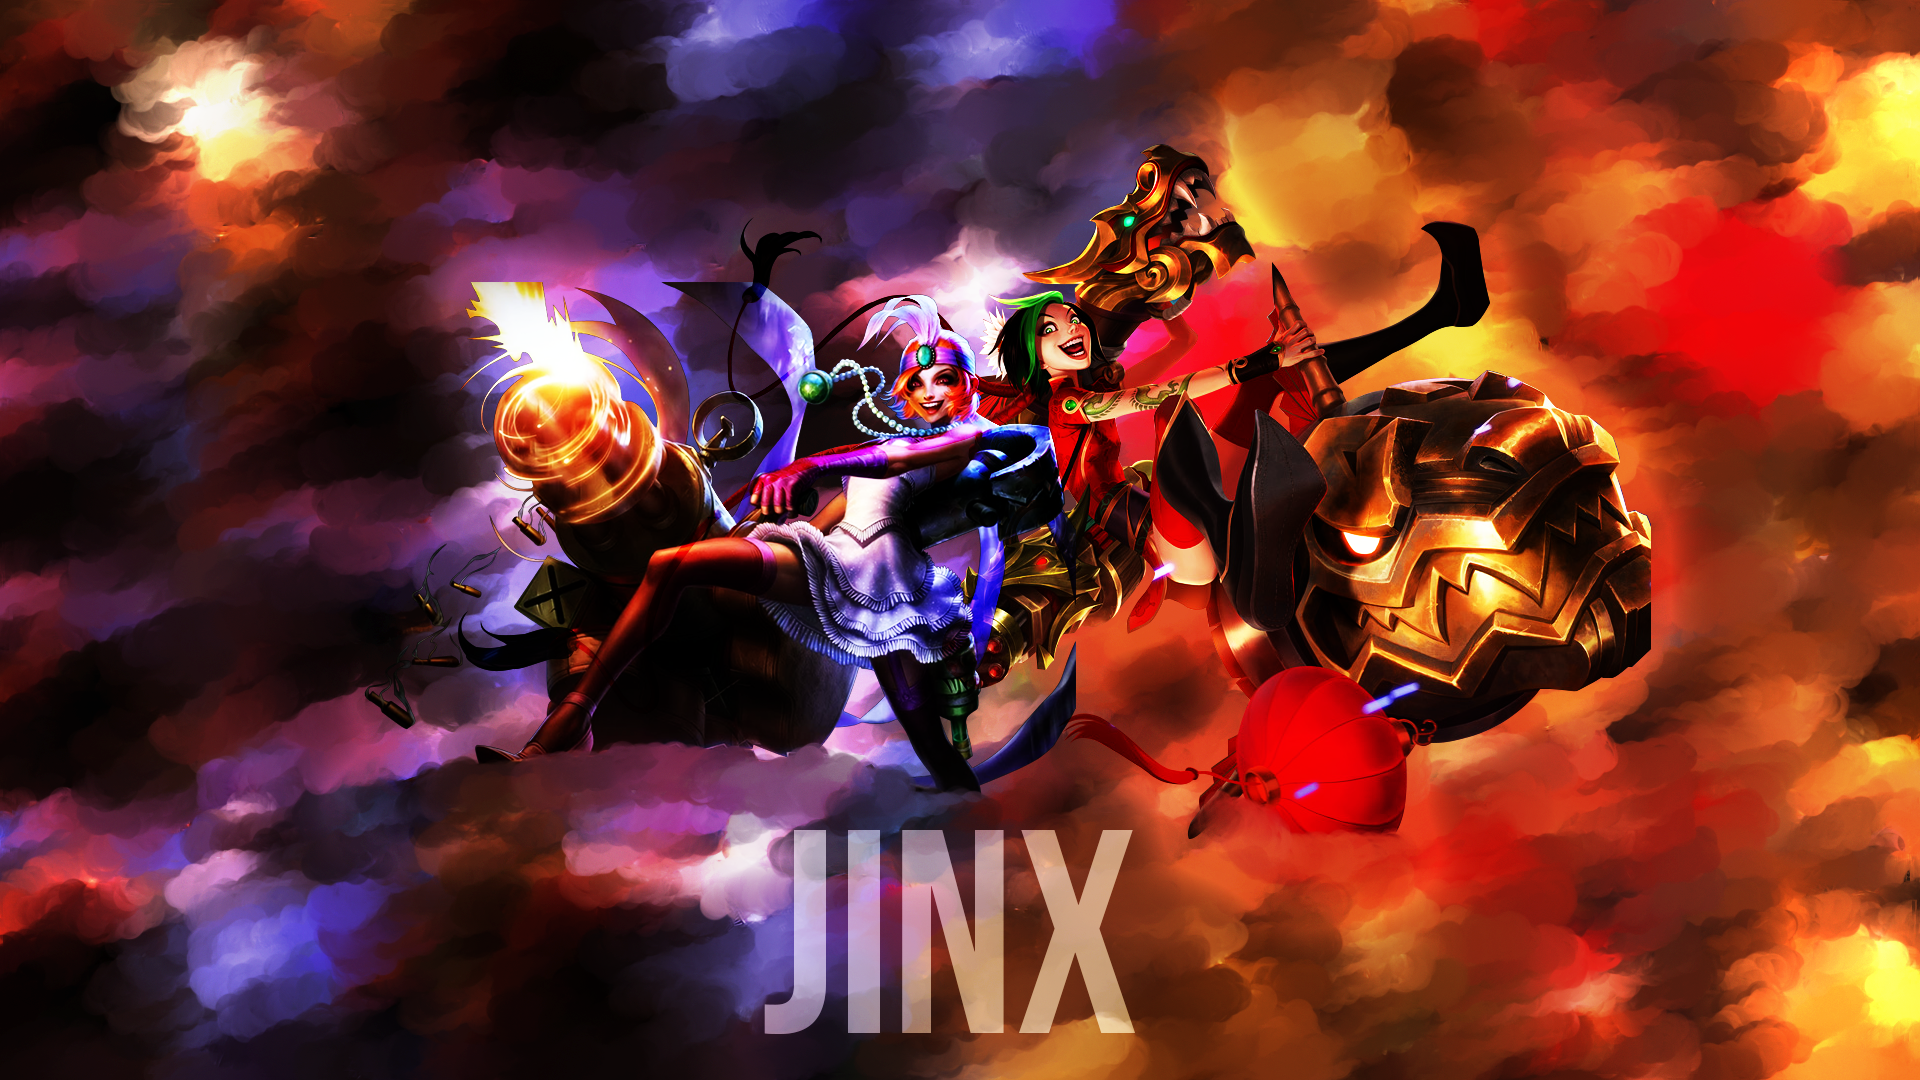 Mafia & Firecracker Jinx wallpaper